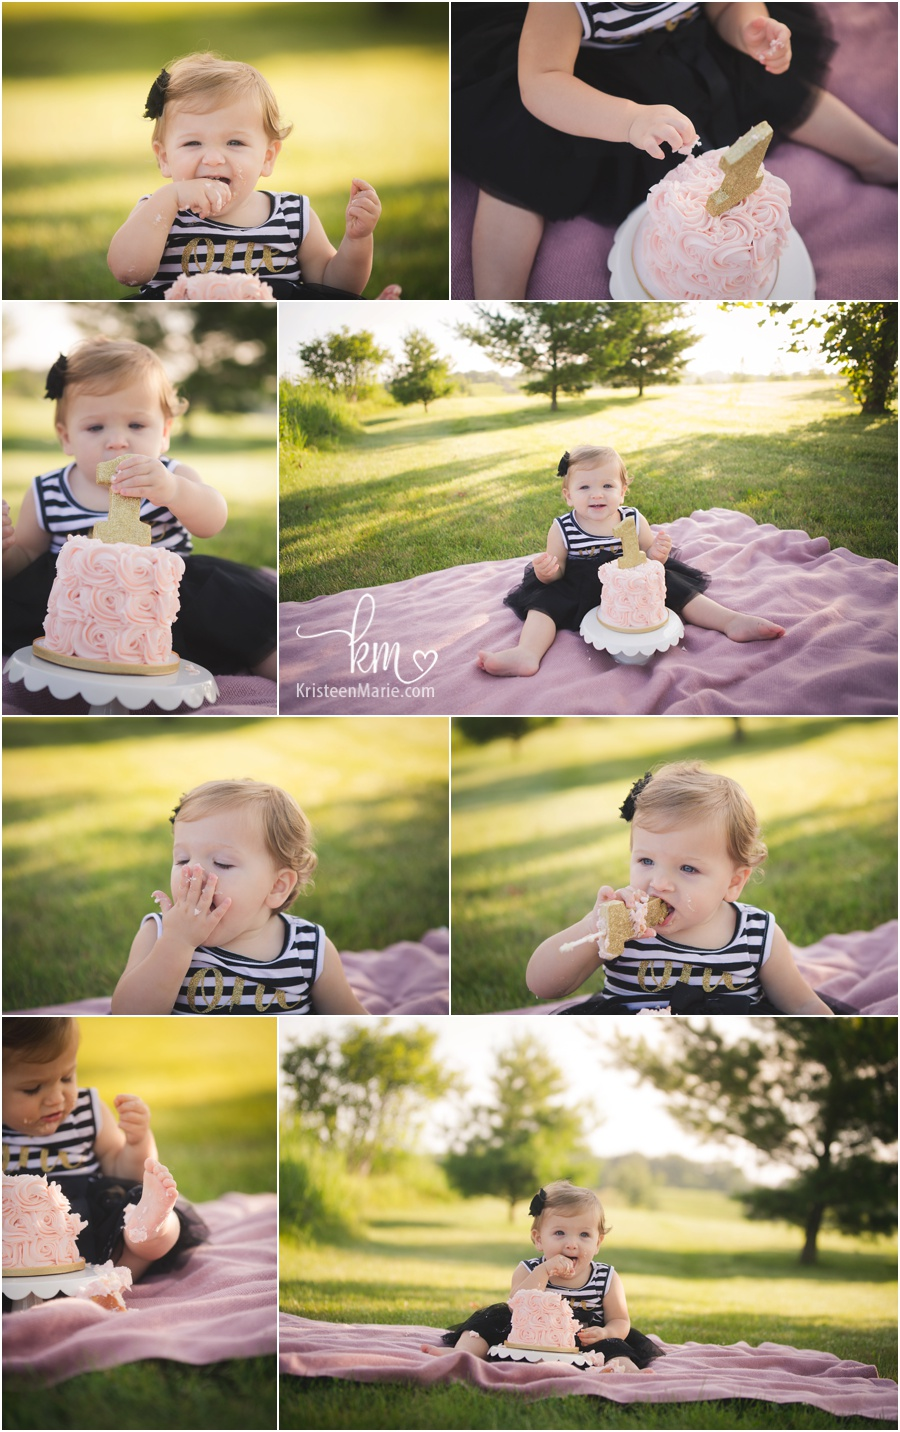 Quinn S Sunrise Outdoor Cake Smash In Indianapolis